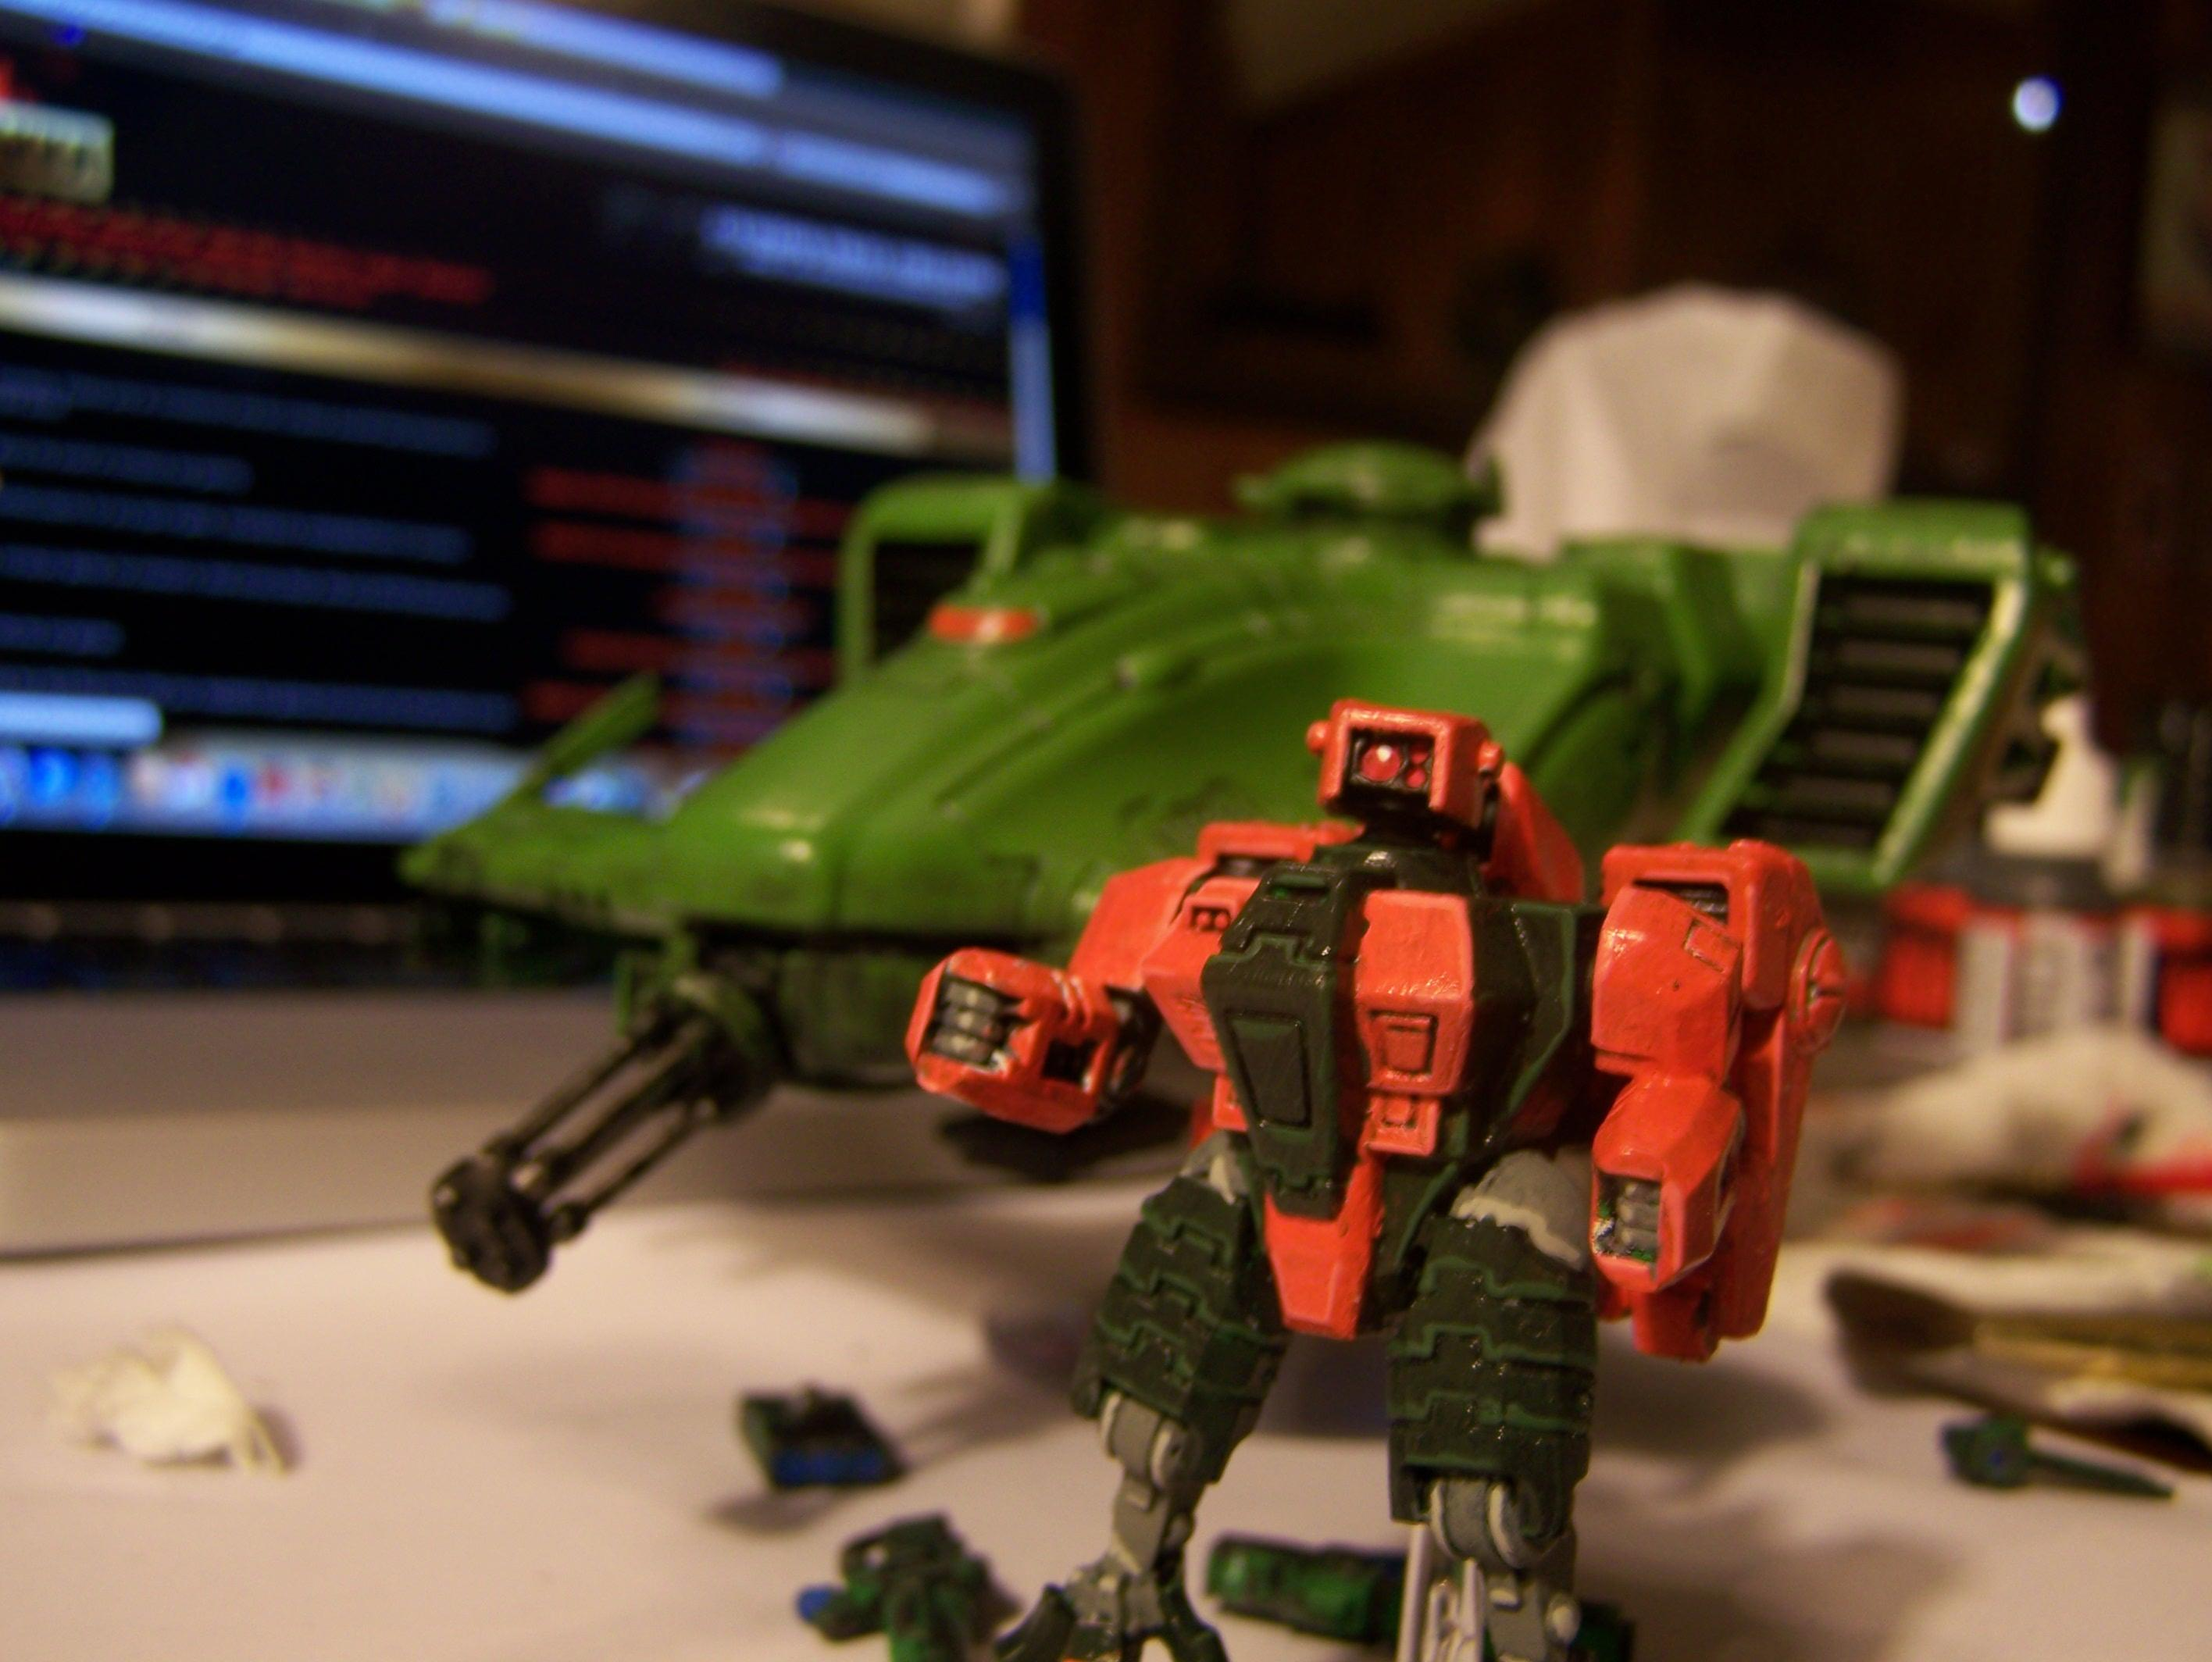 So we got my Devilfish painted like a Zeon Musai space cruiser!